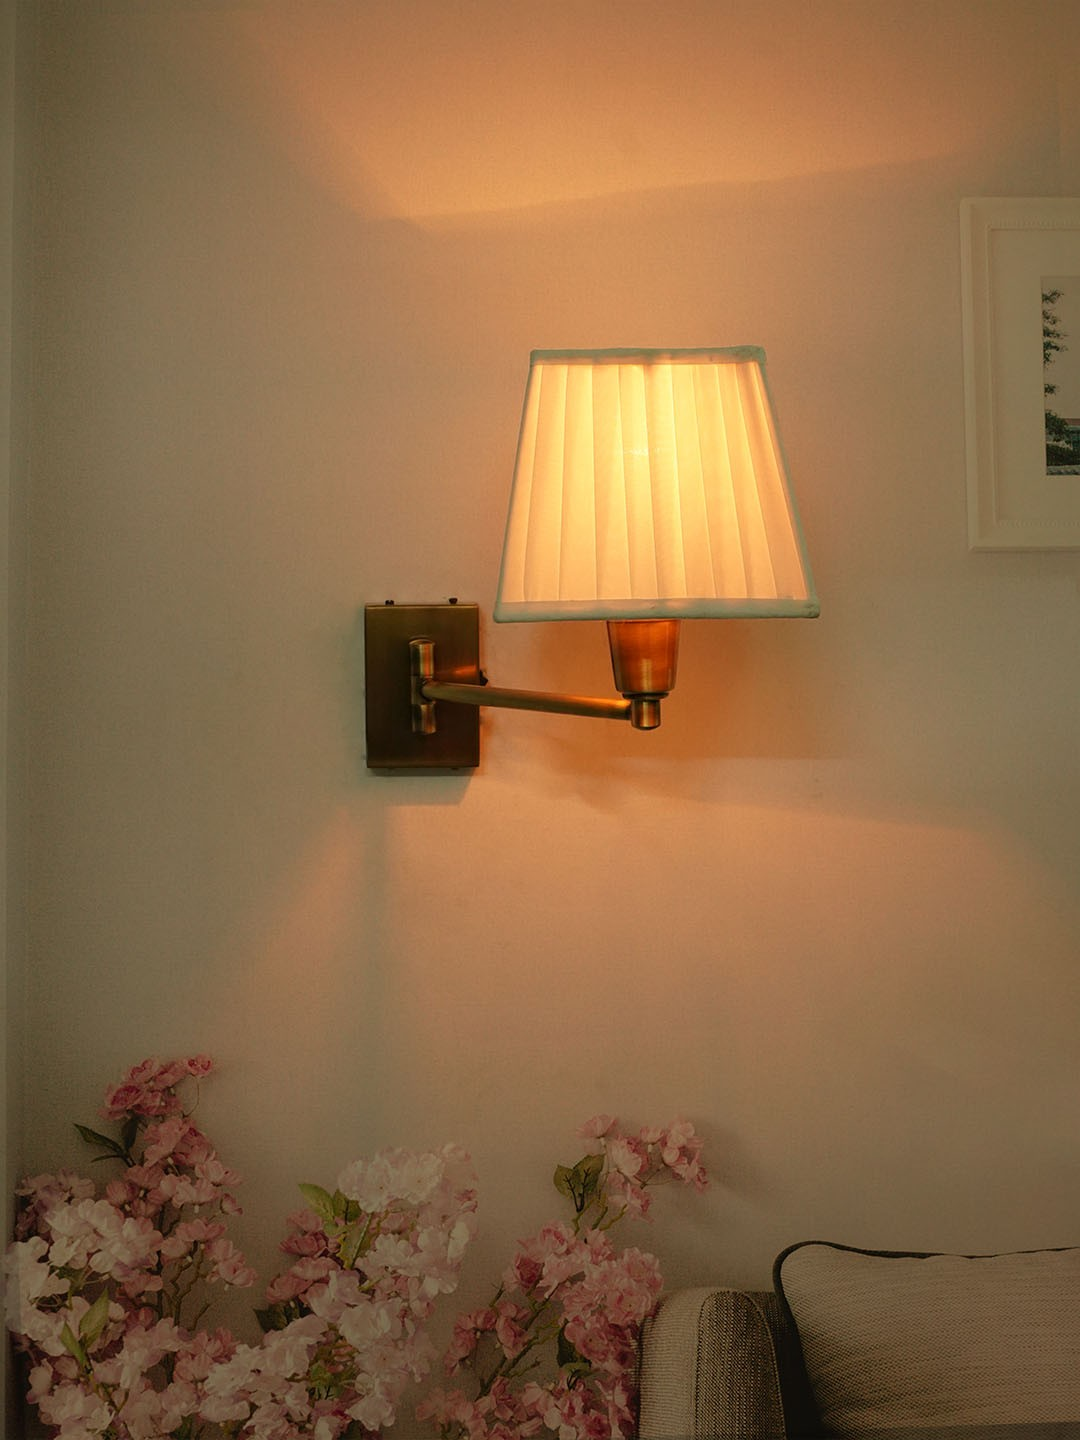 Swivel Antique Bedside Wall Sconce with Pleated Square Fabric Shade